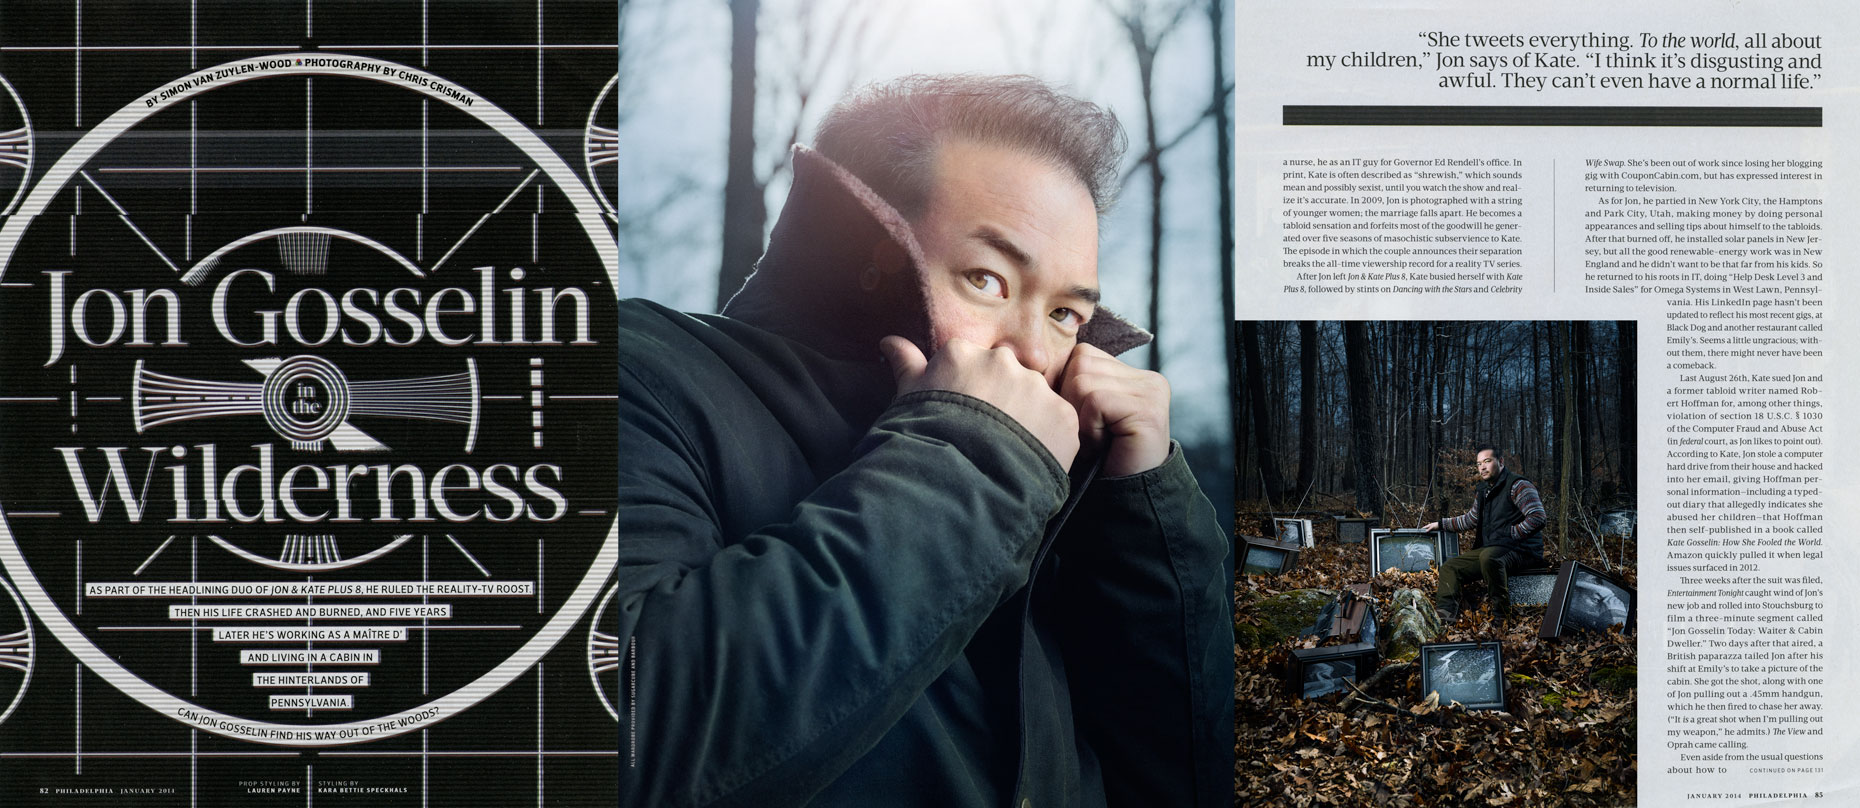 Philadelphia Magazine Feature: Jon Gosselin In the Wilderness